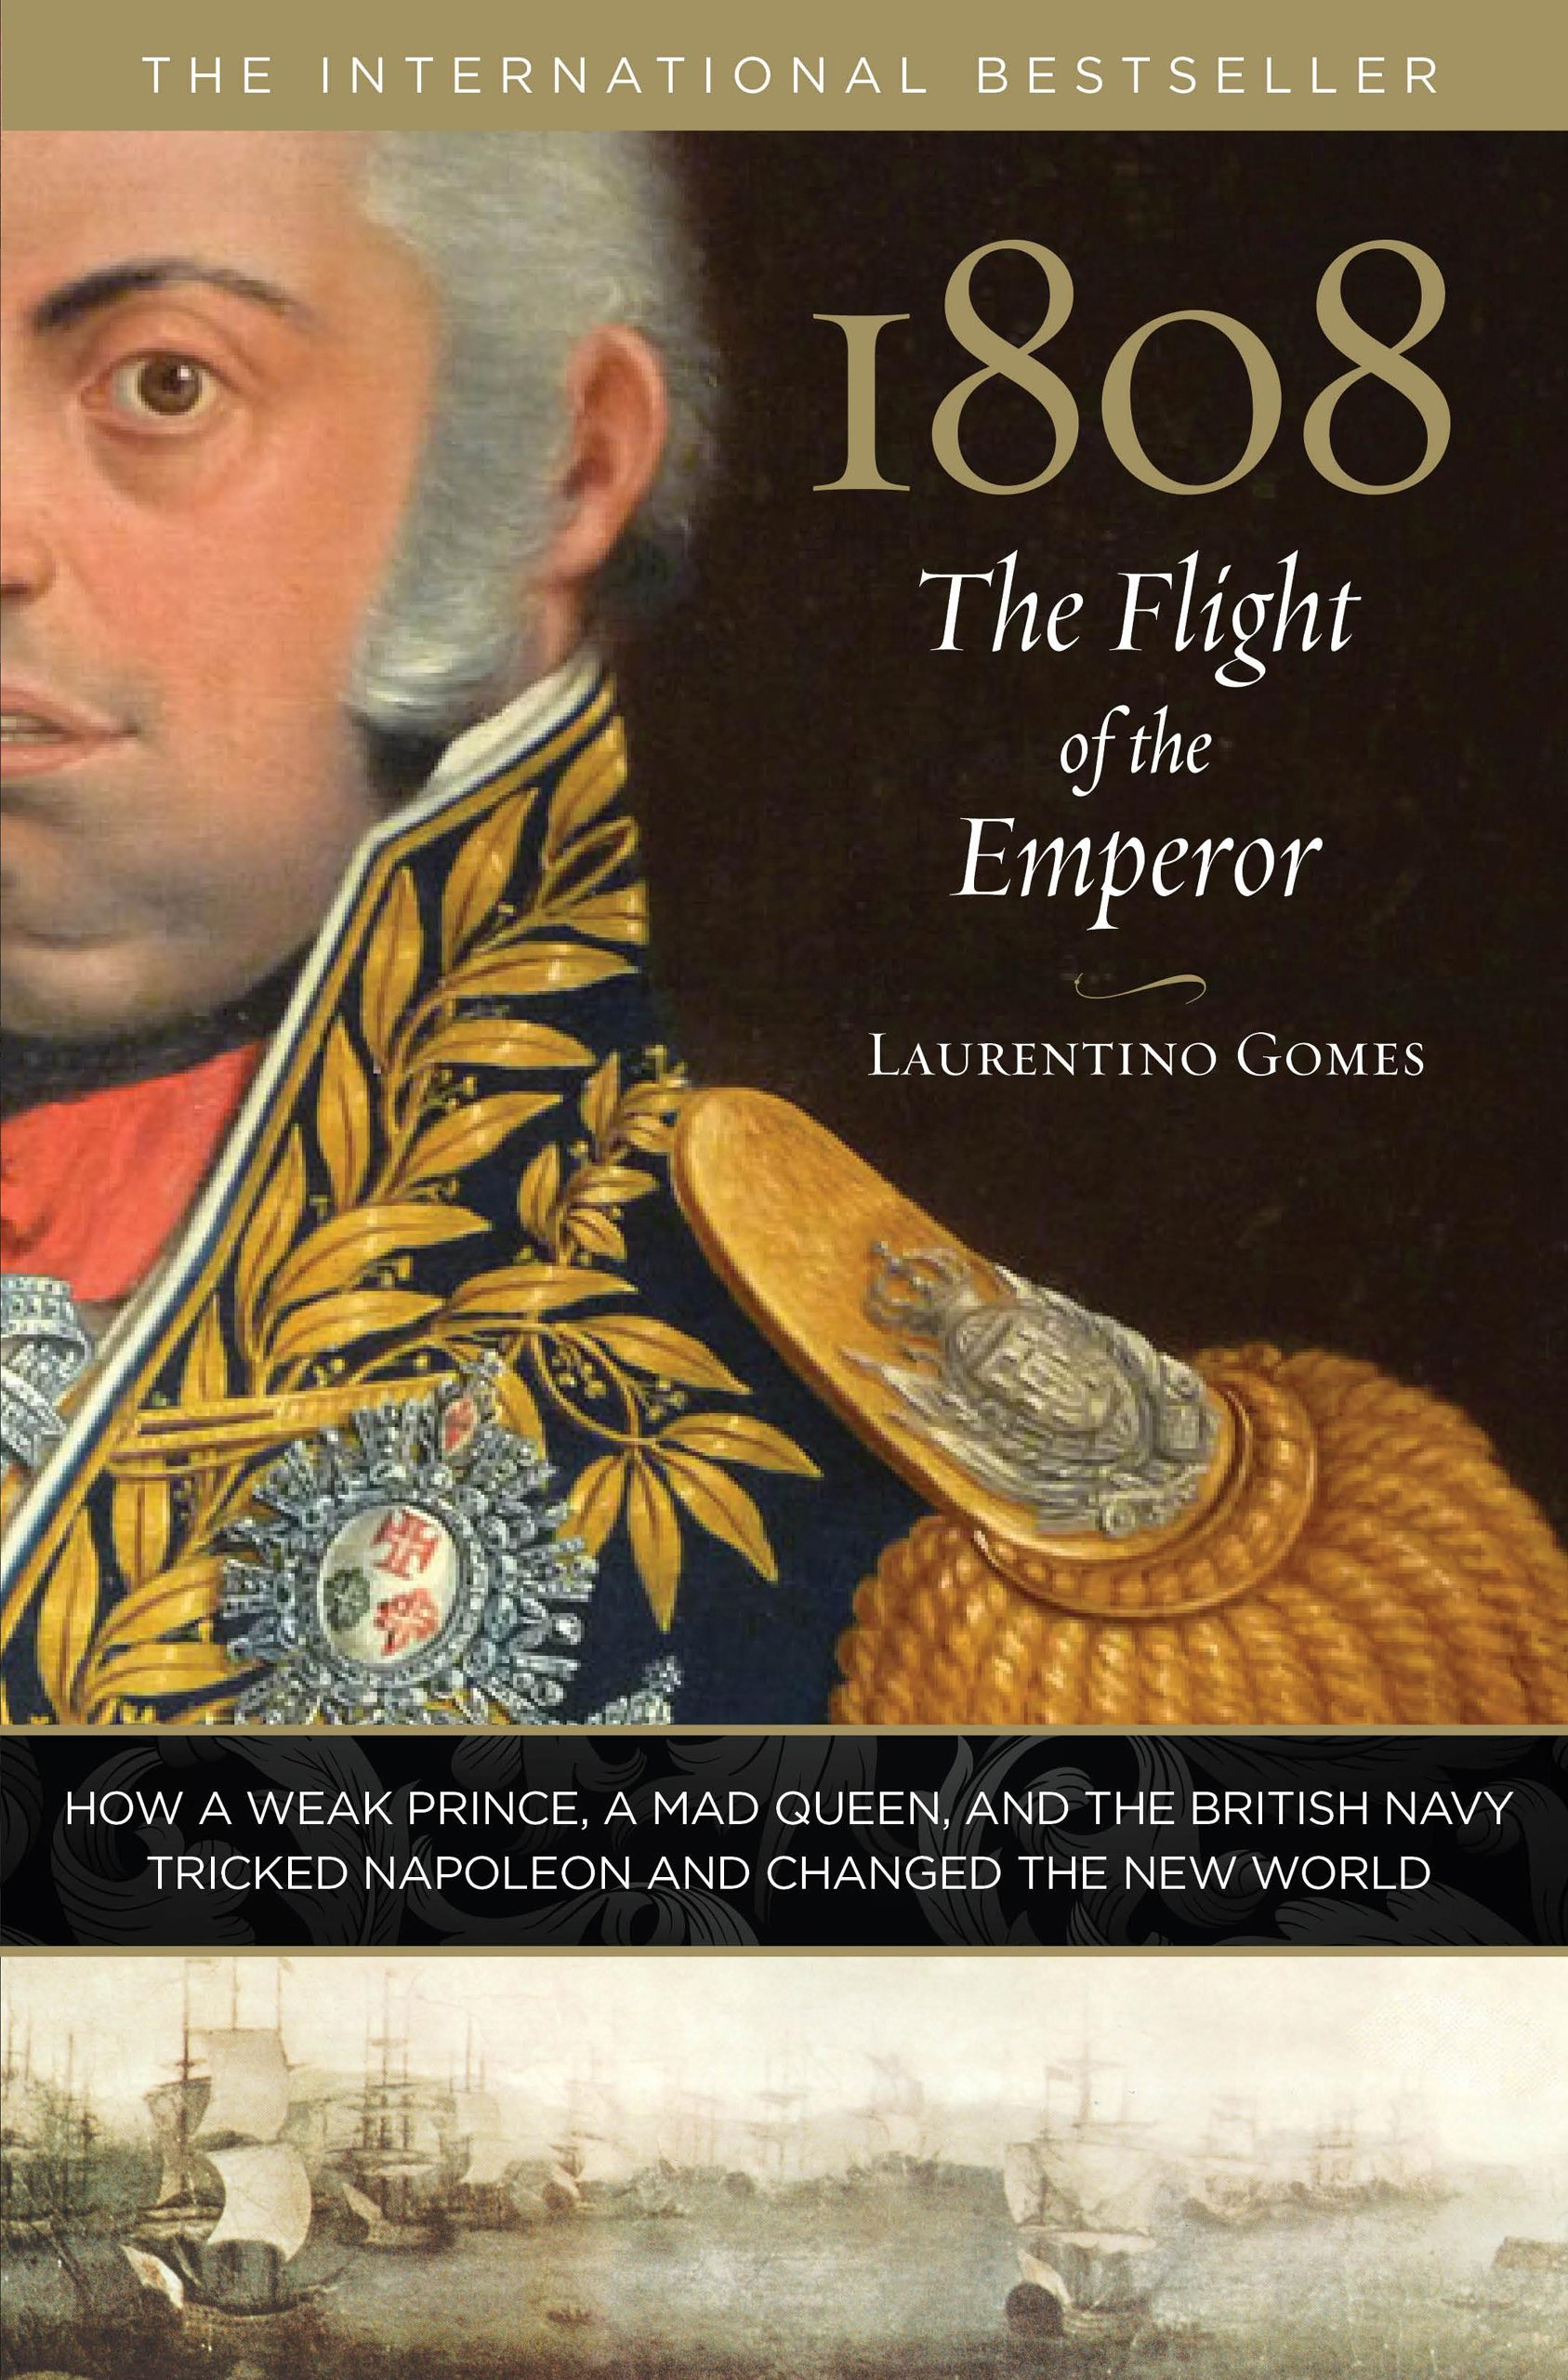 1808: The Flight of the Emperor: How A Weak Prince, A Mad Queen, And The  British Navy Tricked Napoleon And Changed The New World: Laurentino Gomes:  ...